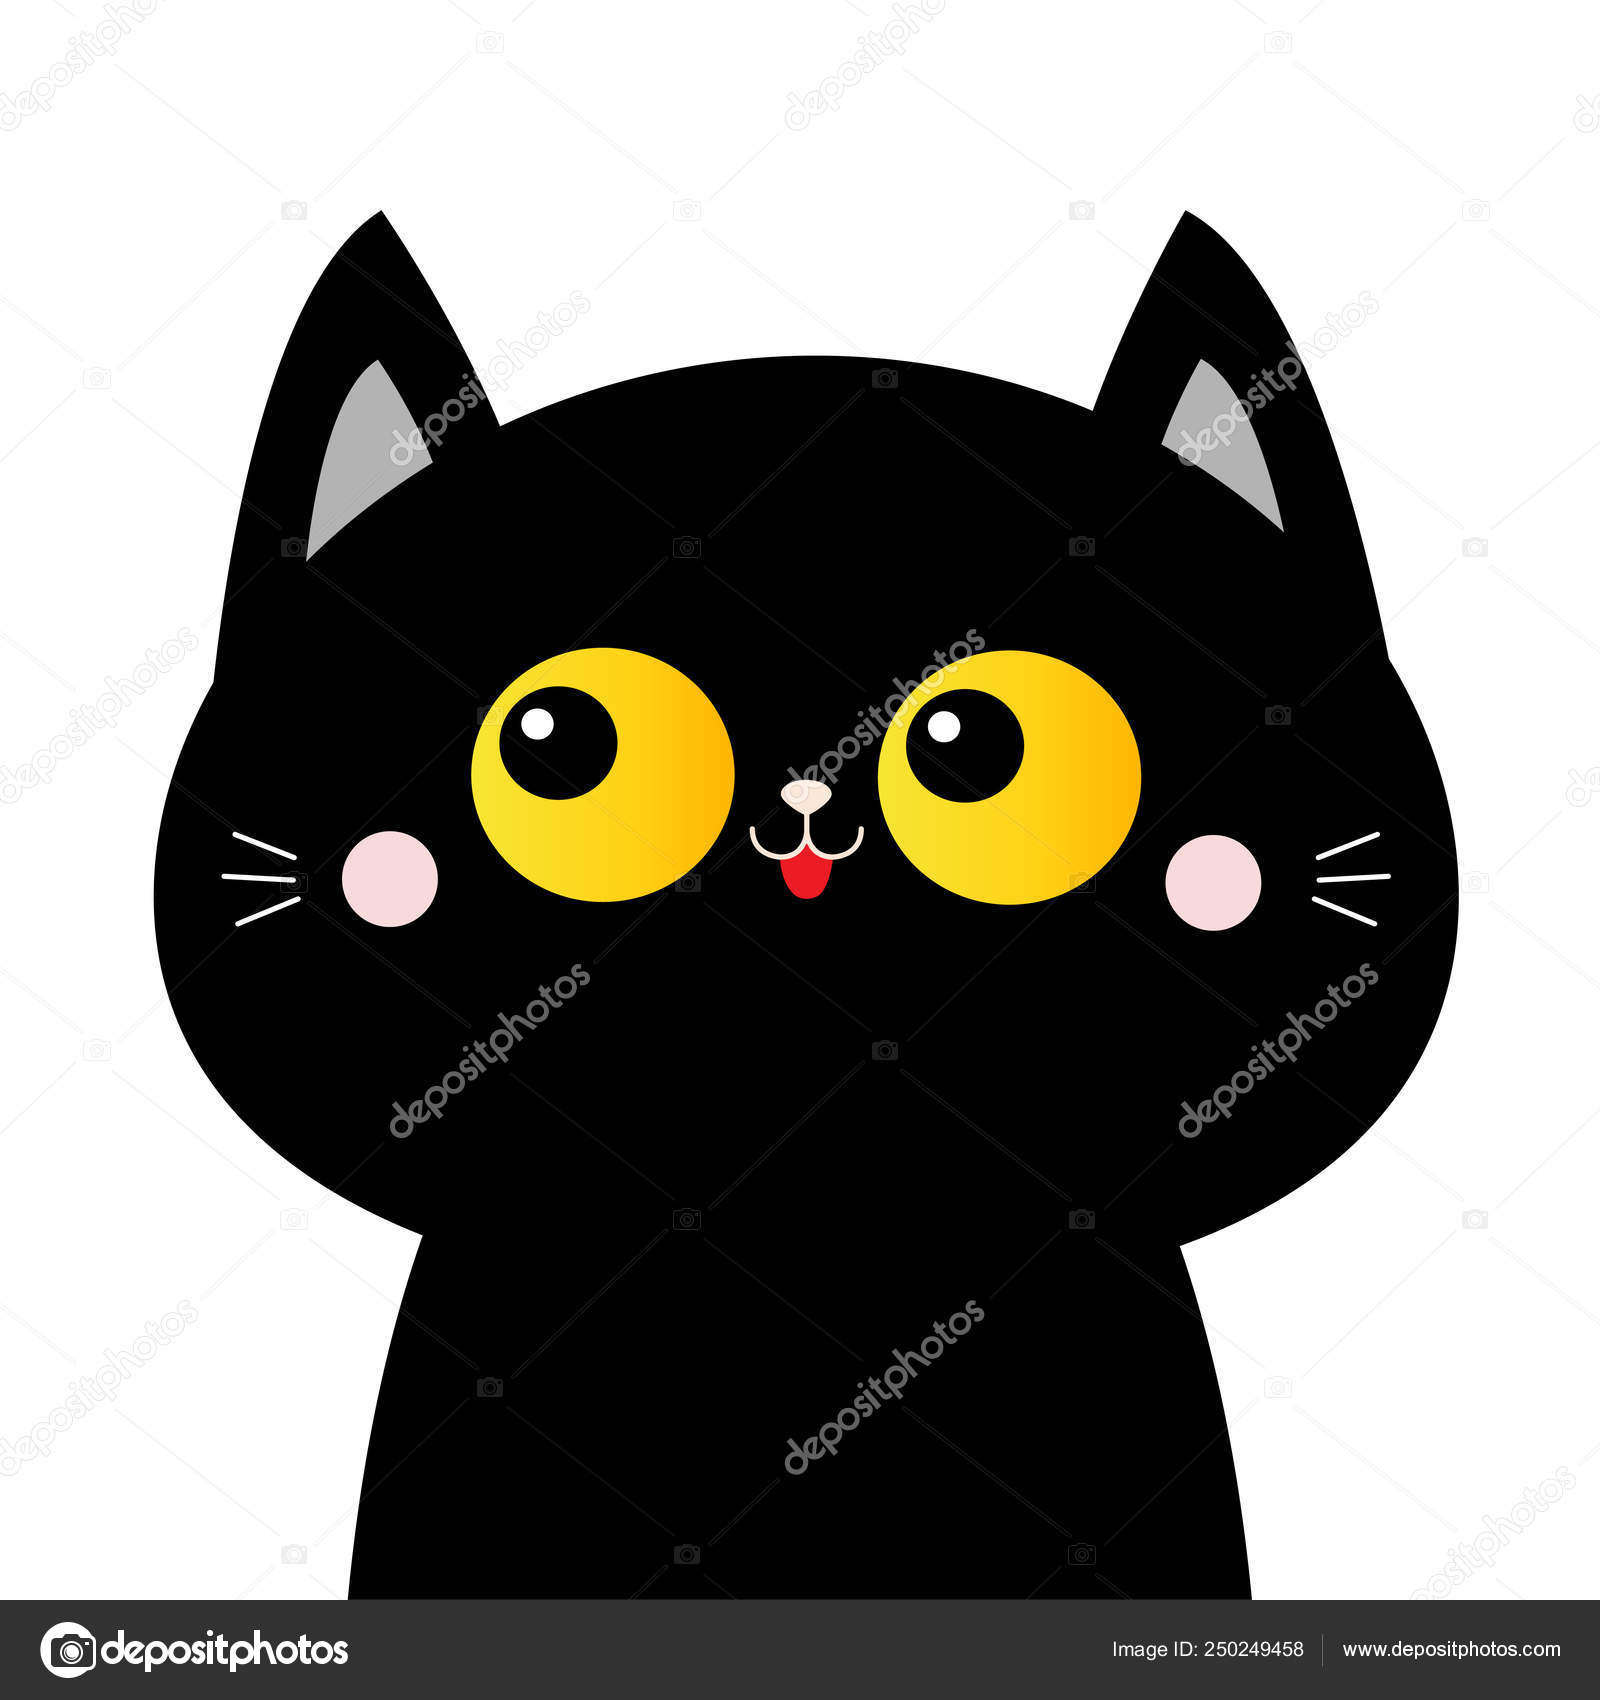 Black Cat Face Head Silhouette With Yellow Eyes Pink Blush Cheeks